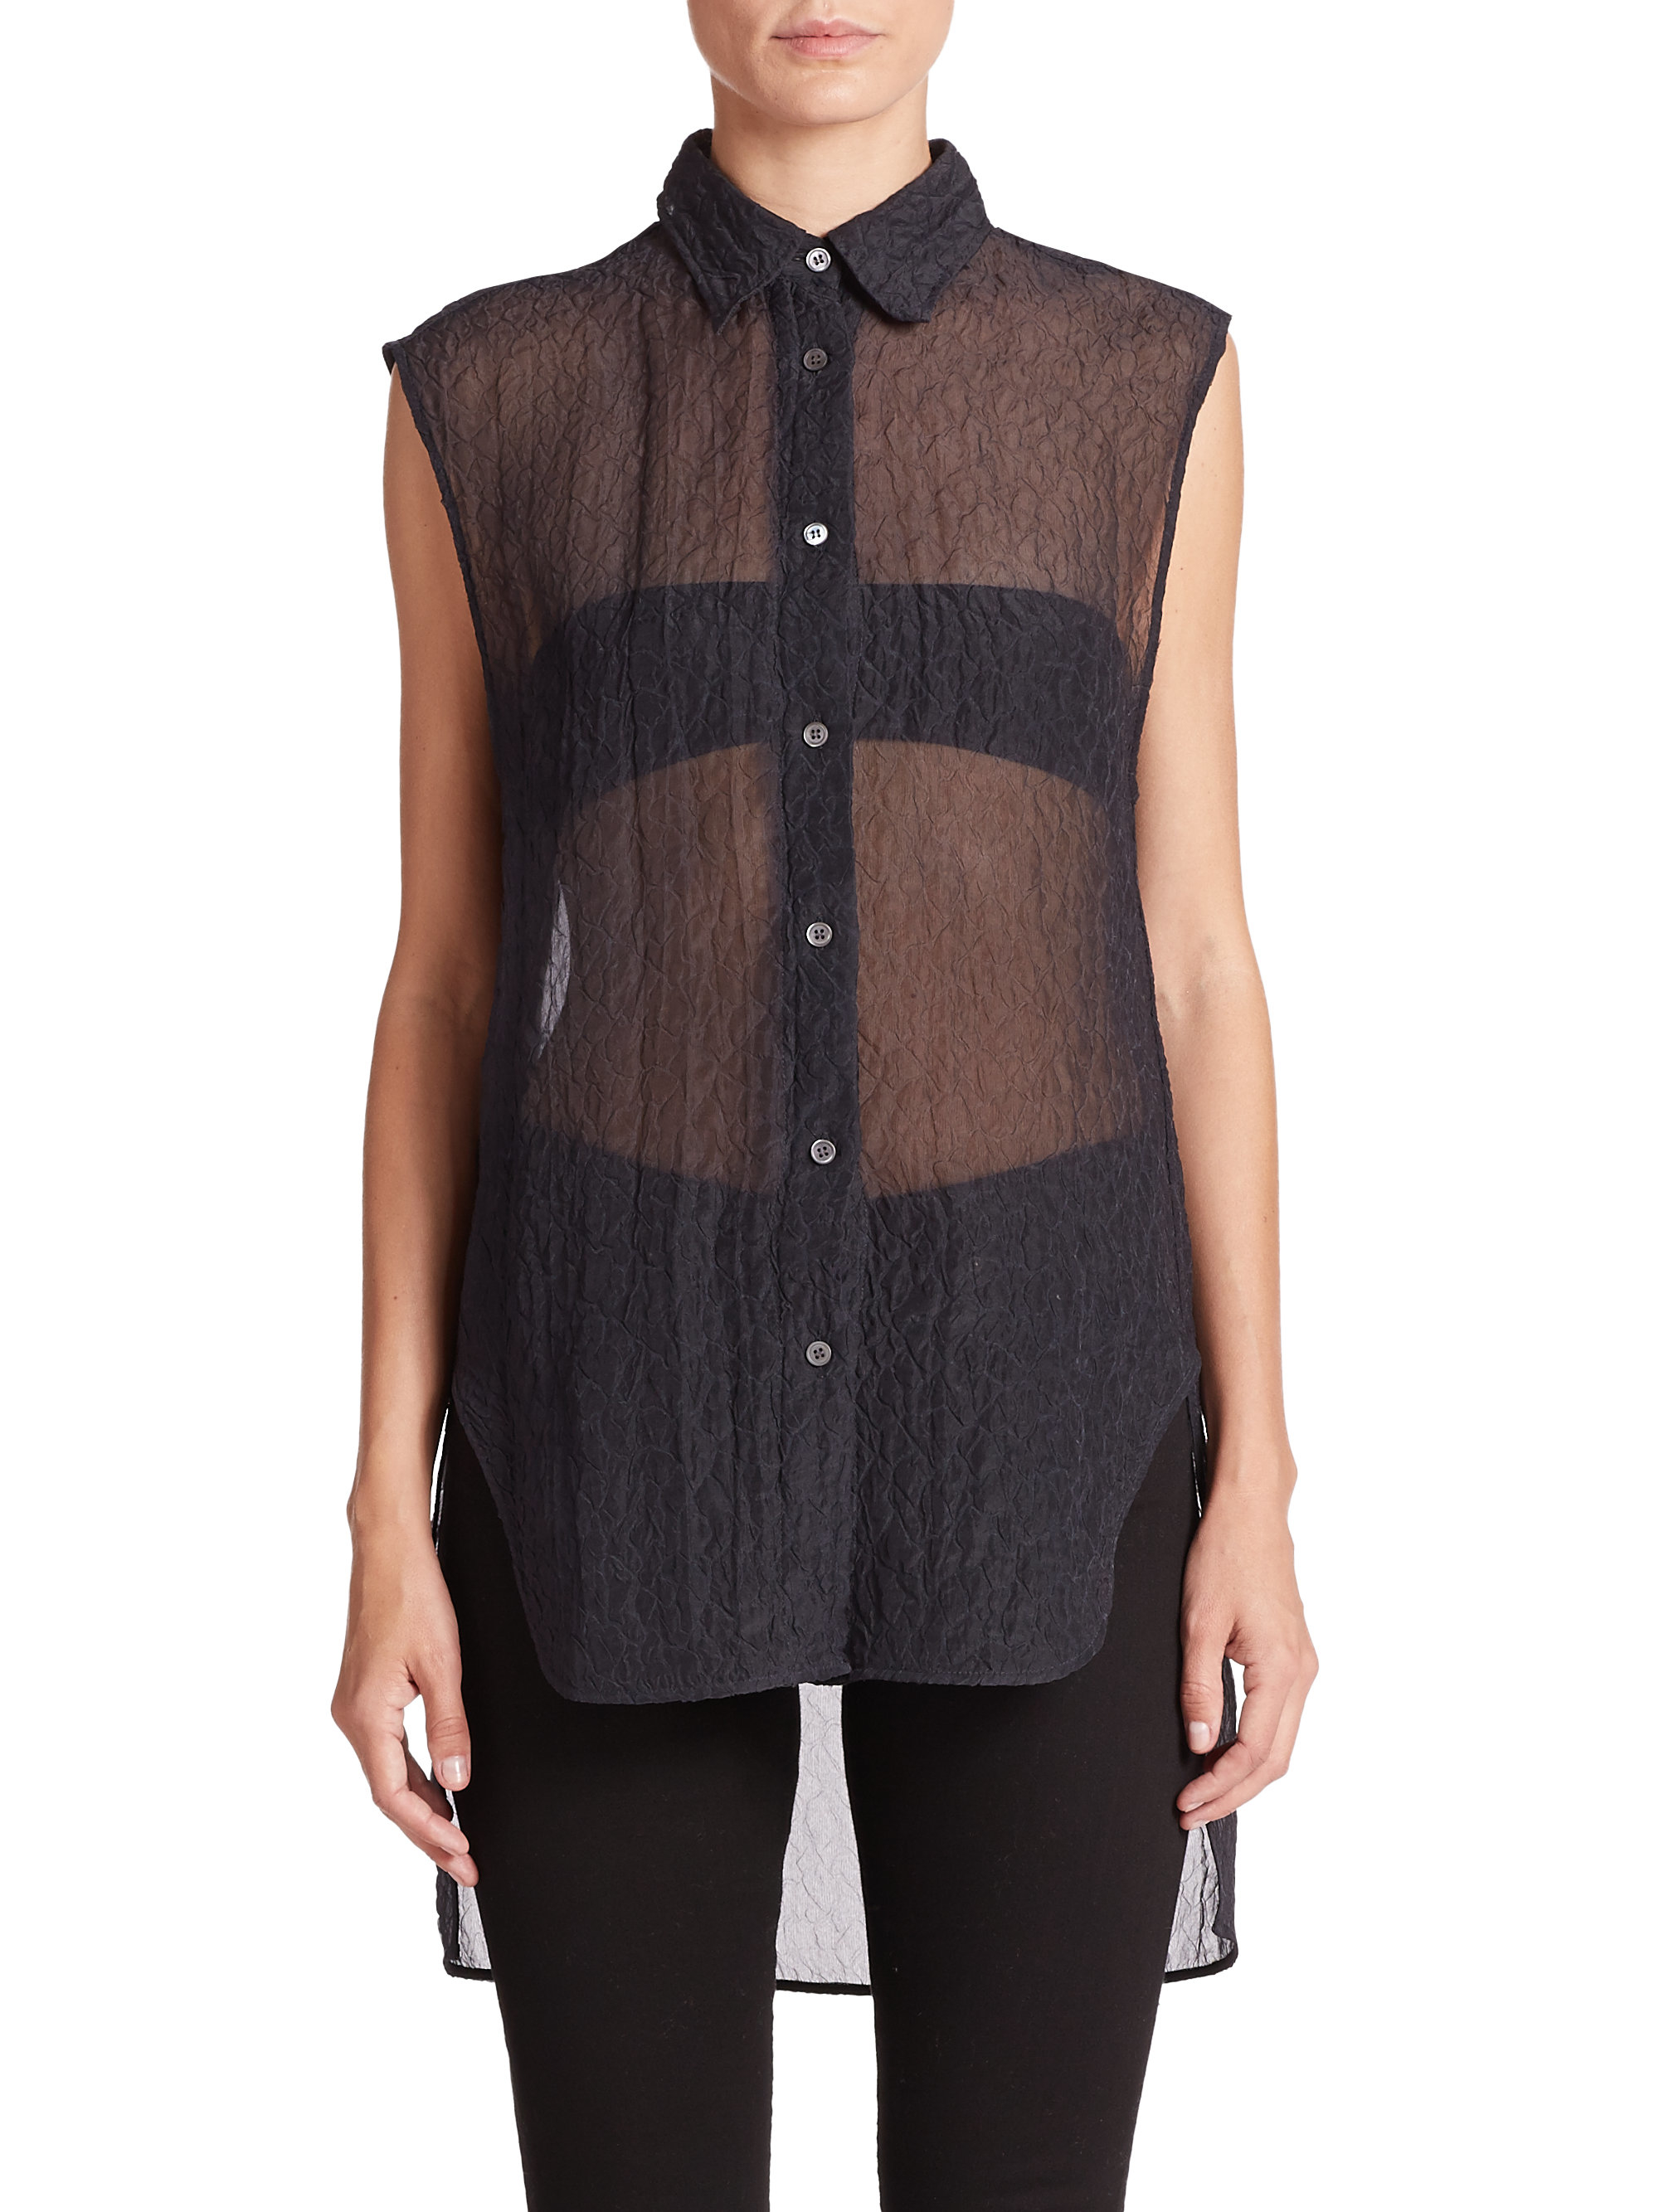 Acne studios tricia sheer cloque button down shirt in gray for Grey button down shirt